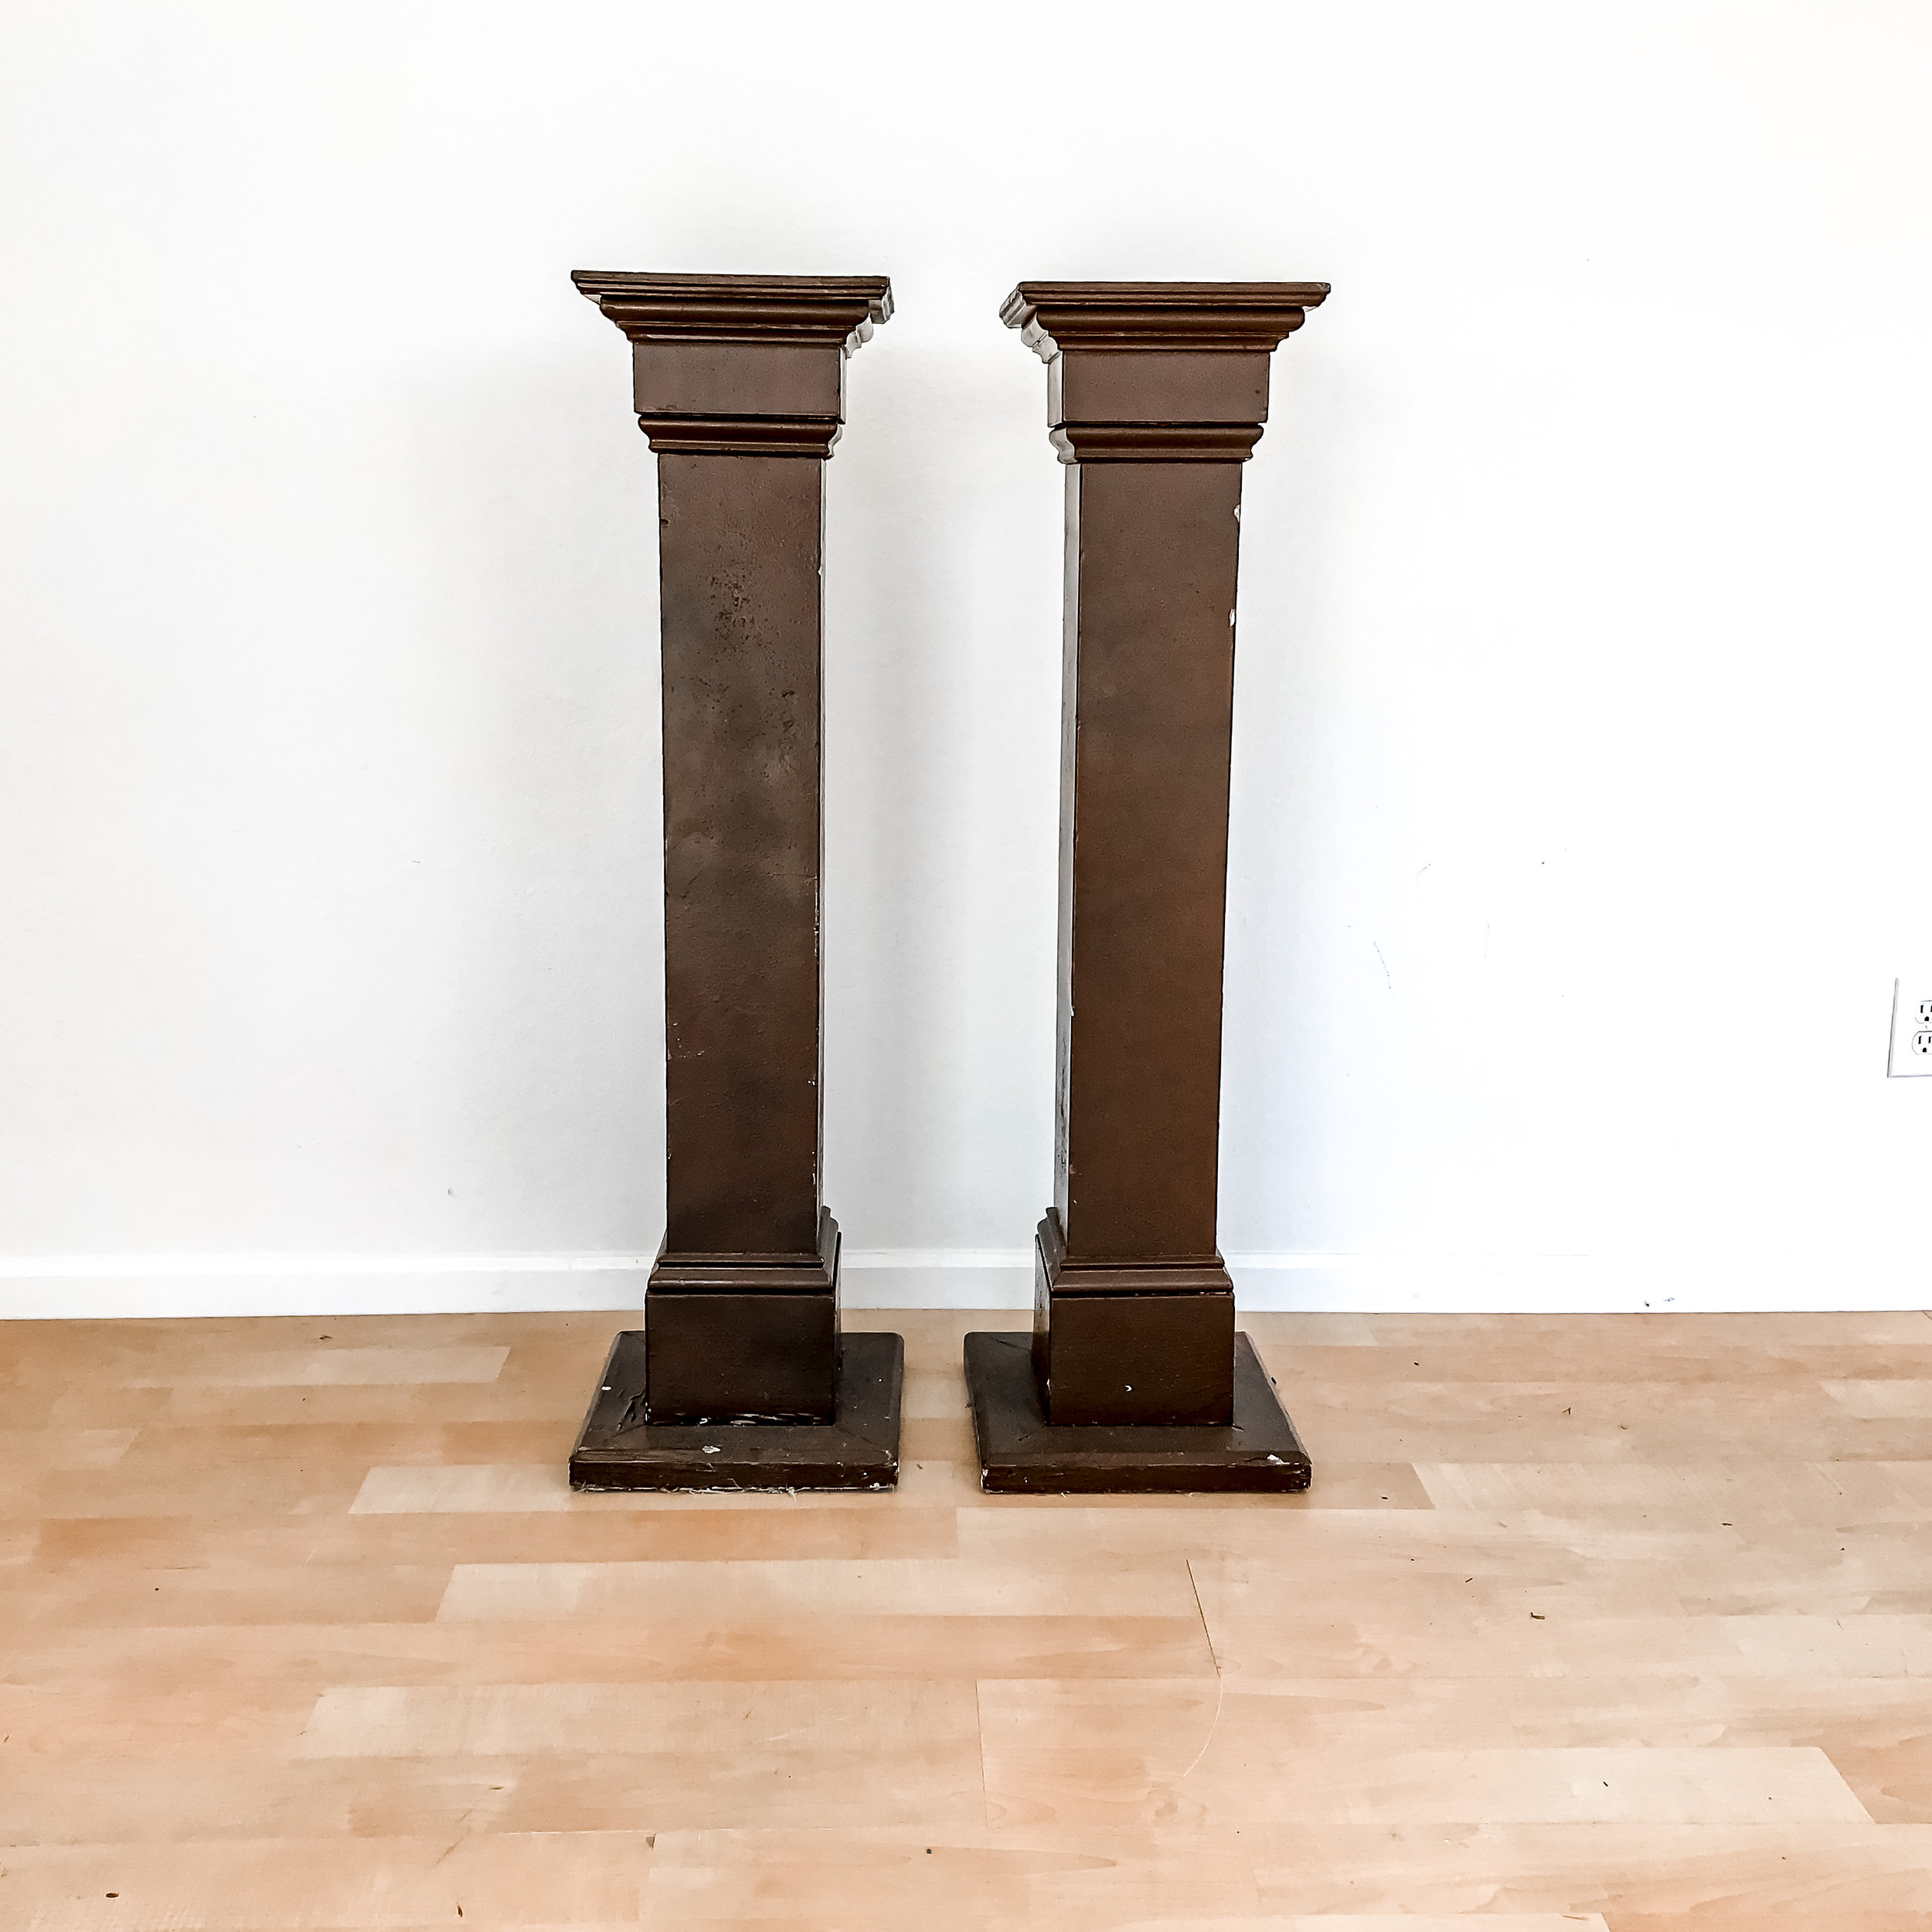 renee landry events  tall wood column pedestal stand decor wedding rentals.jpg